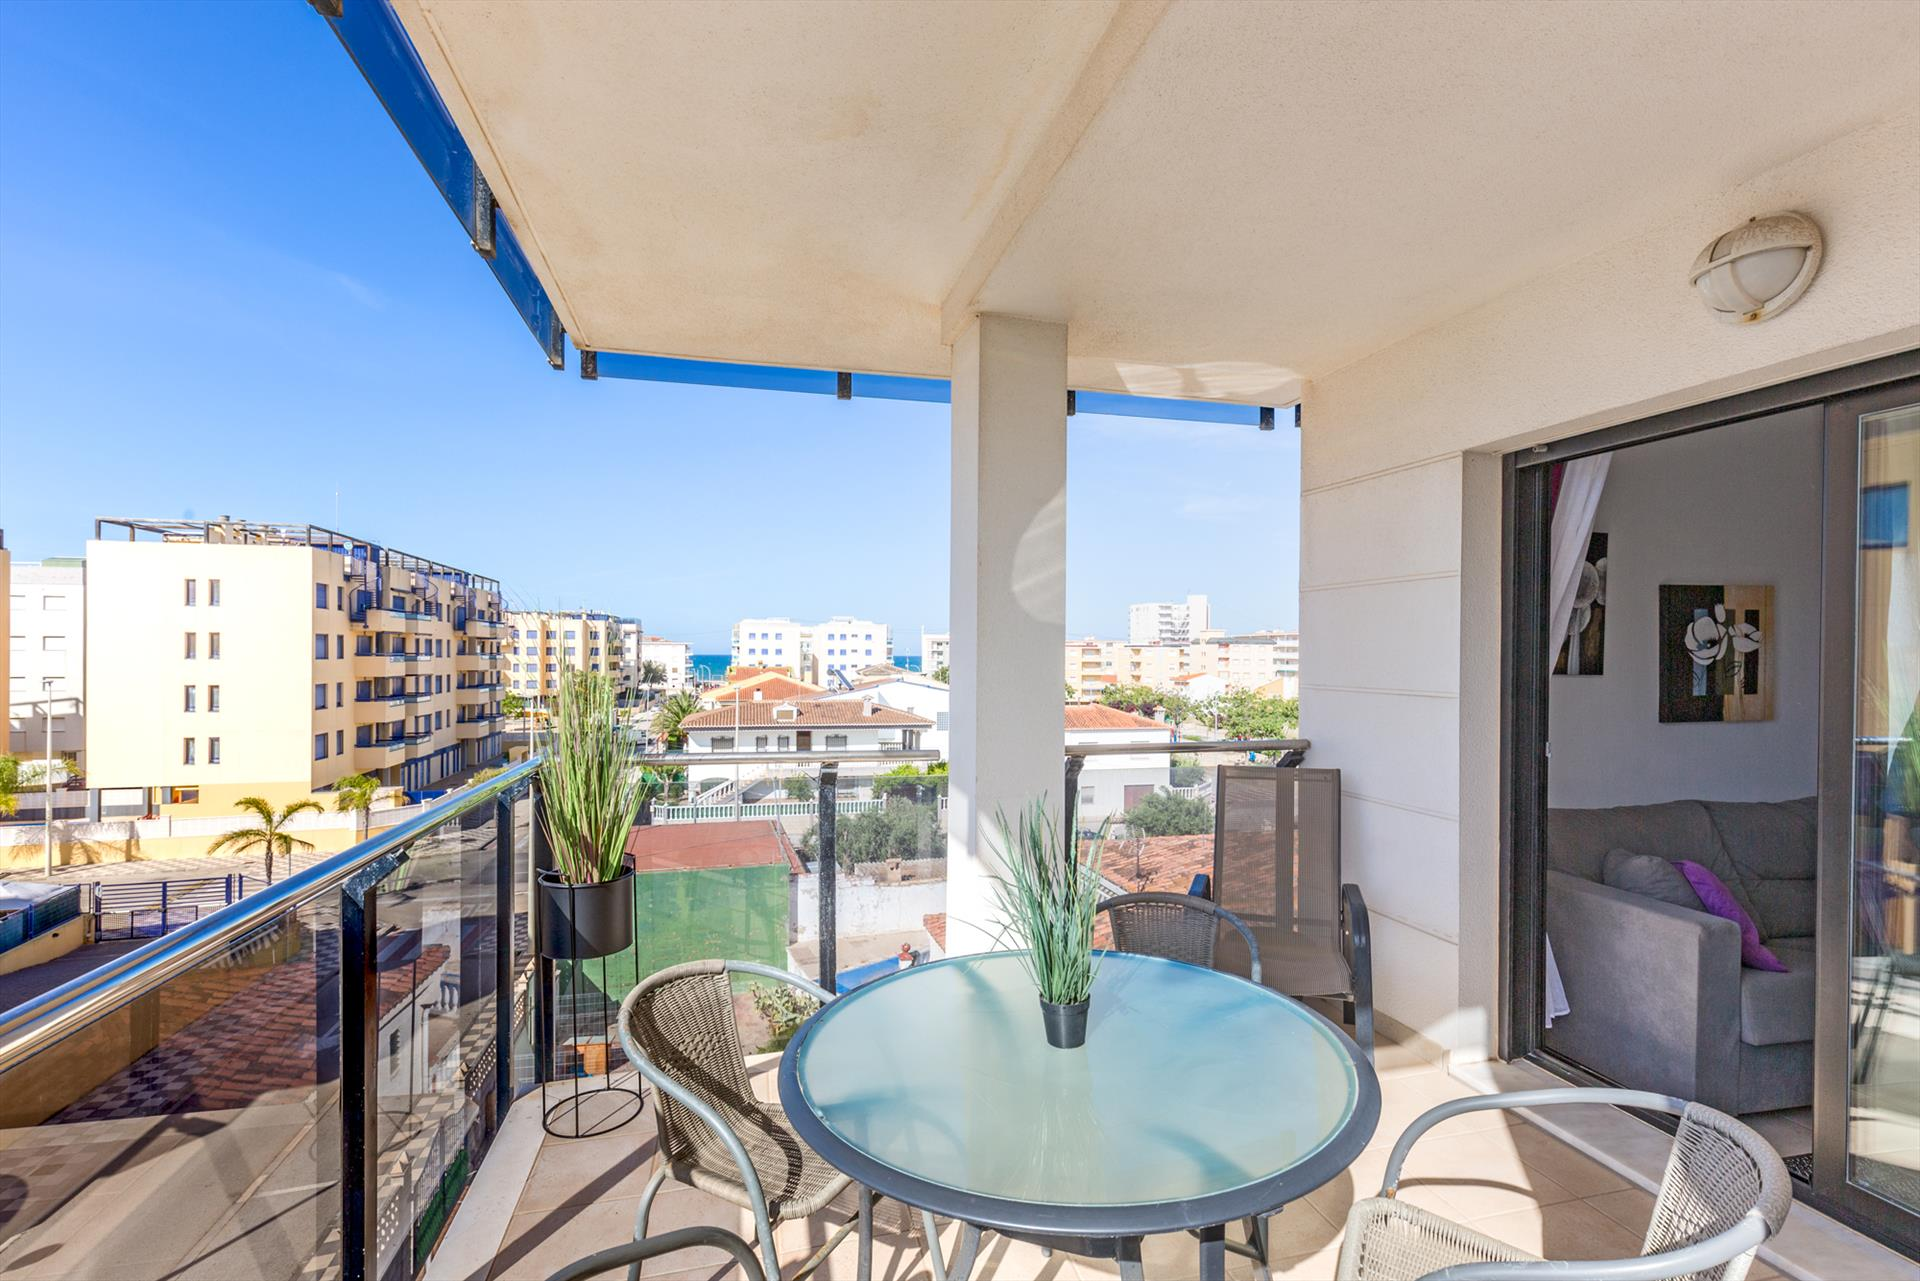 Mar de Bellreguard Migjorn AP12, Wonderful and nice apartment  with communal pool in Bellreguard, on the Costa Blanca, Spain for 6 persons.....